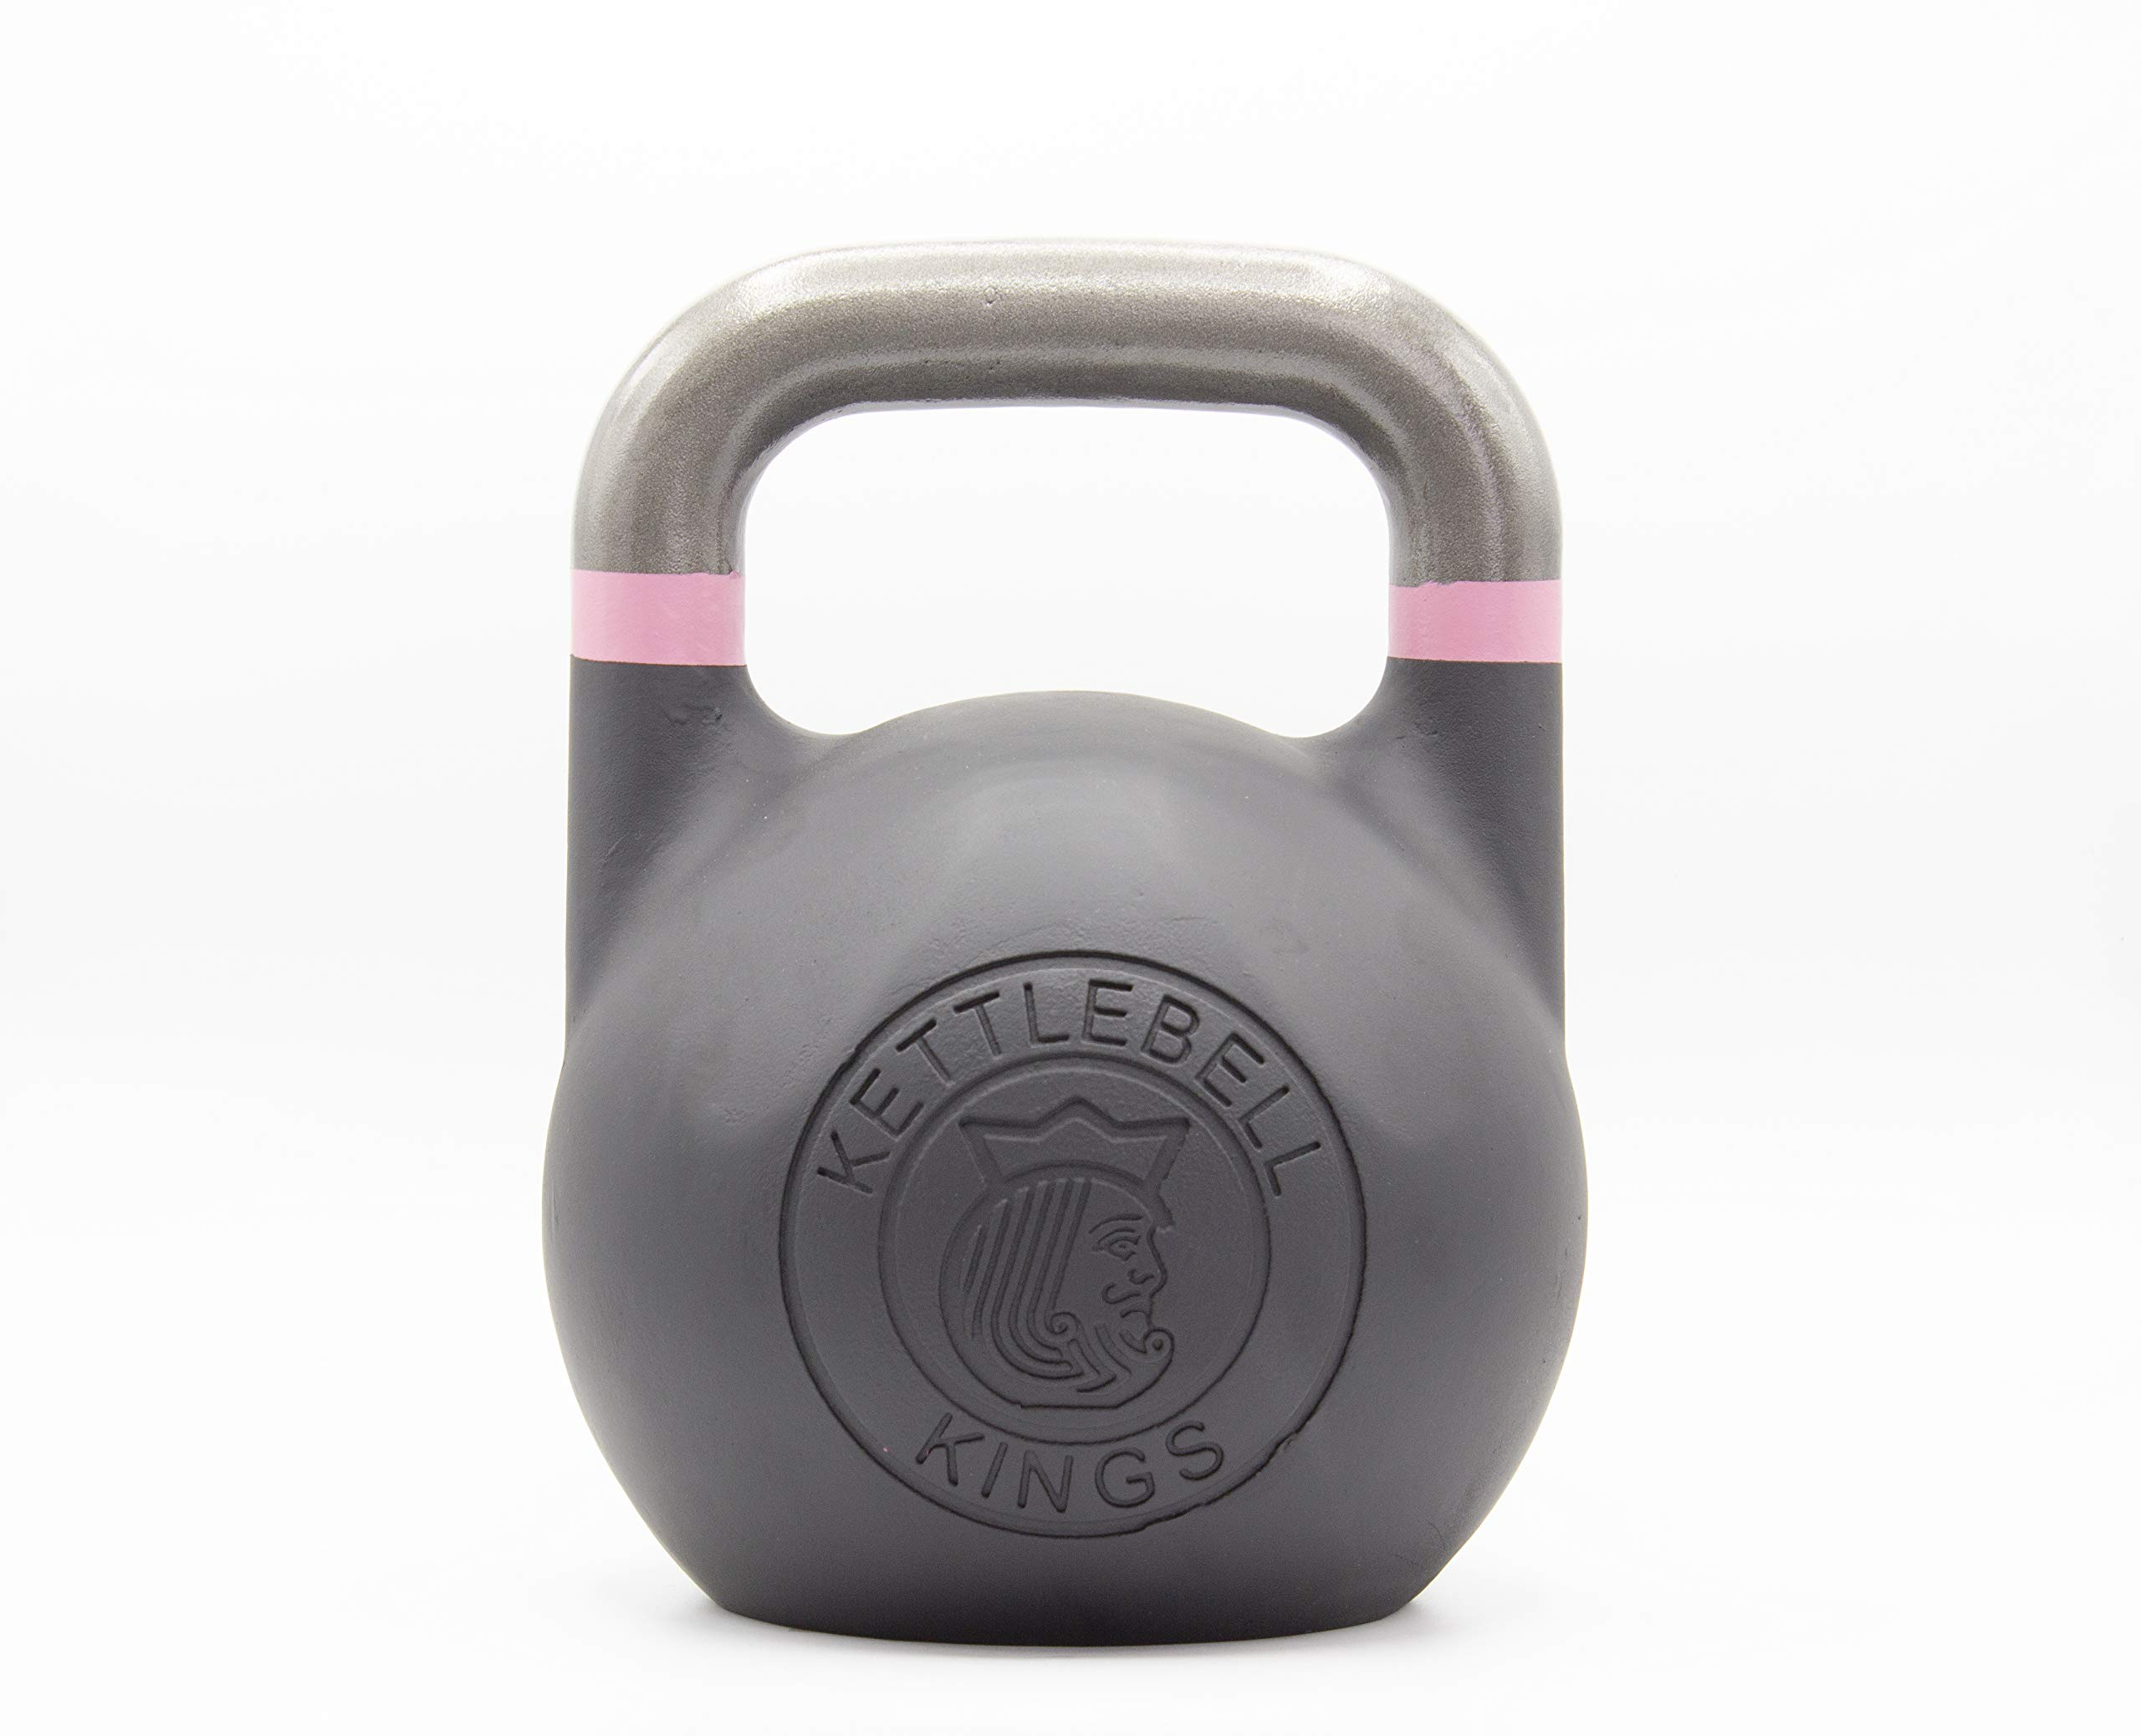 Kettlebell Kings | Kettlebell Weights | Competition Kettlebell Weight Sets for Women & Men | Built in American Style | Same Size & Dimension Across All Weights (20)